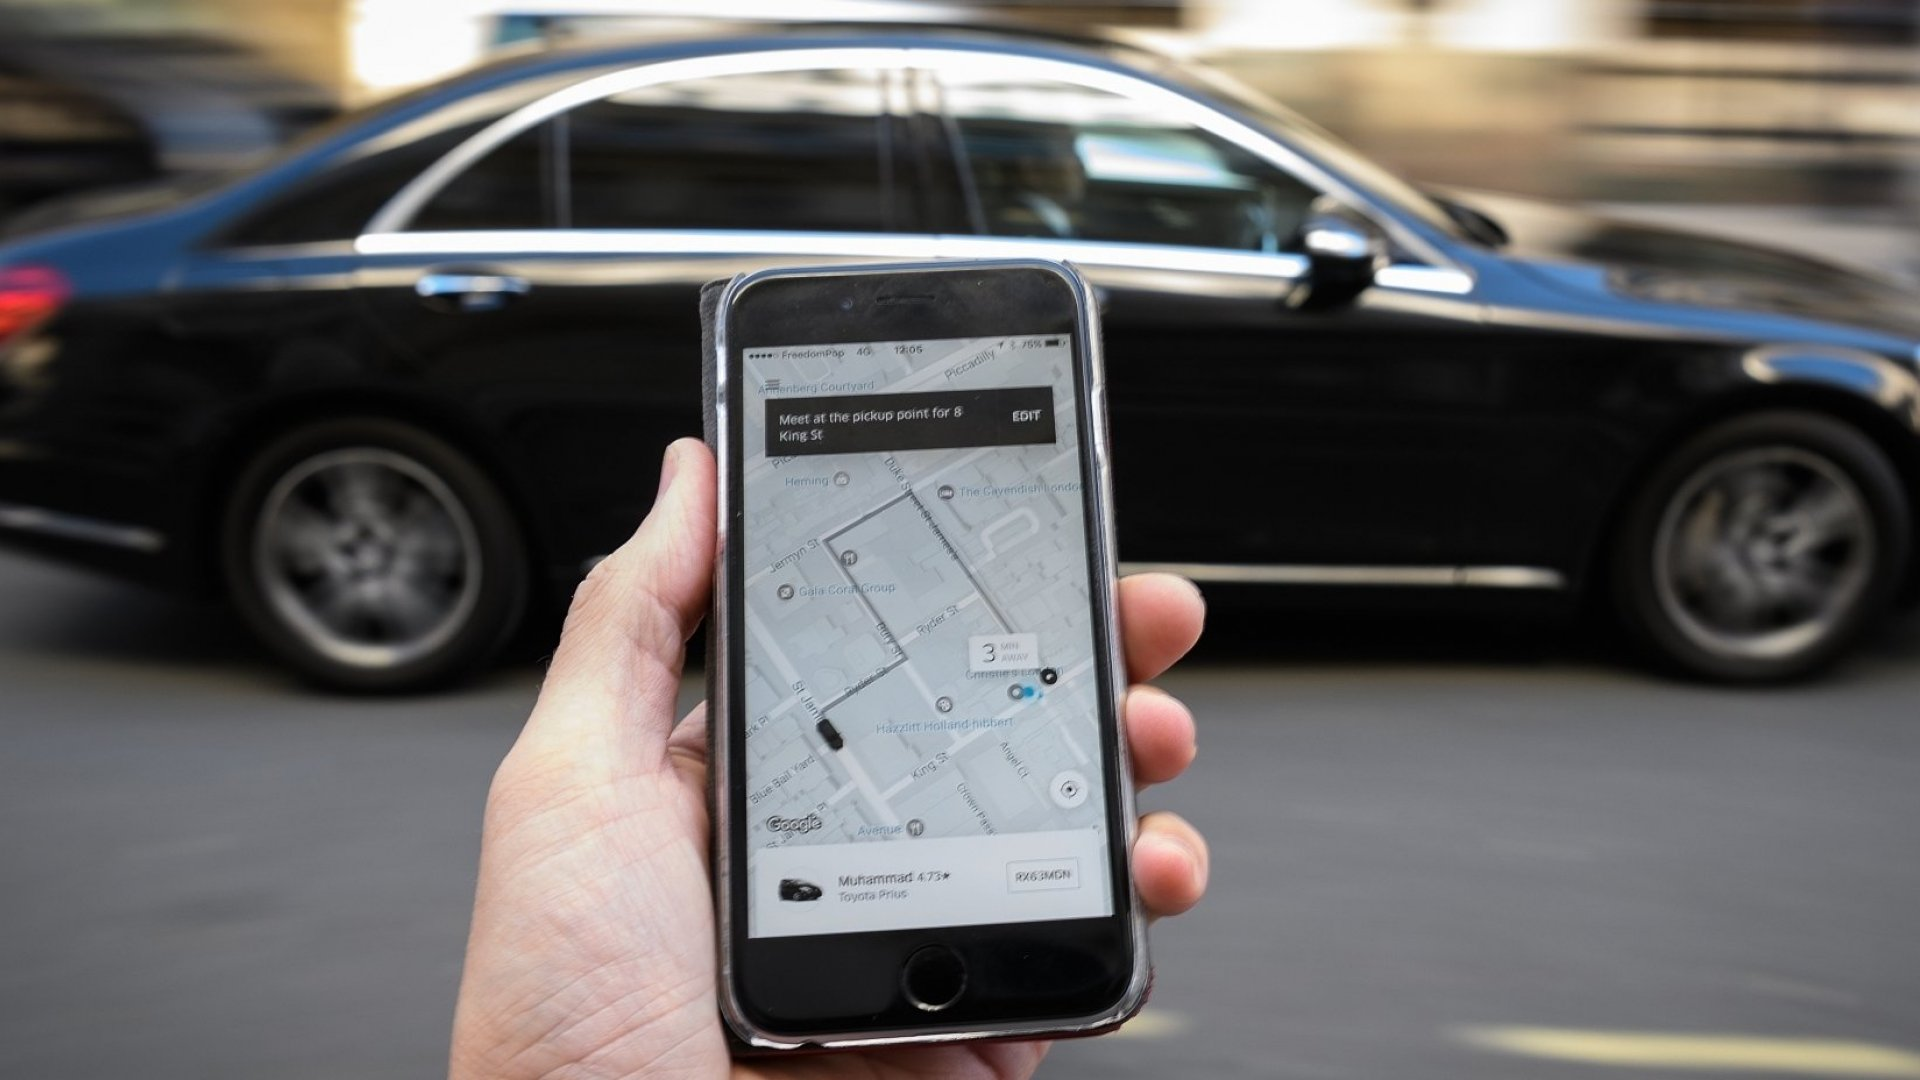 Uber Surge Pricing Snafu Results in Shocking $14,400 Charge for a 20-Minute Ride (Don't Be the Next Victim)